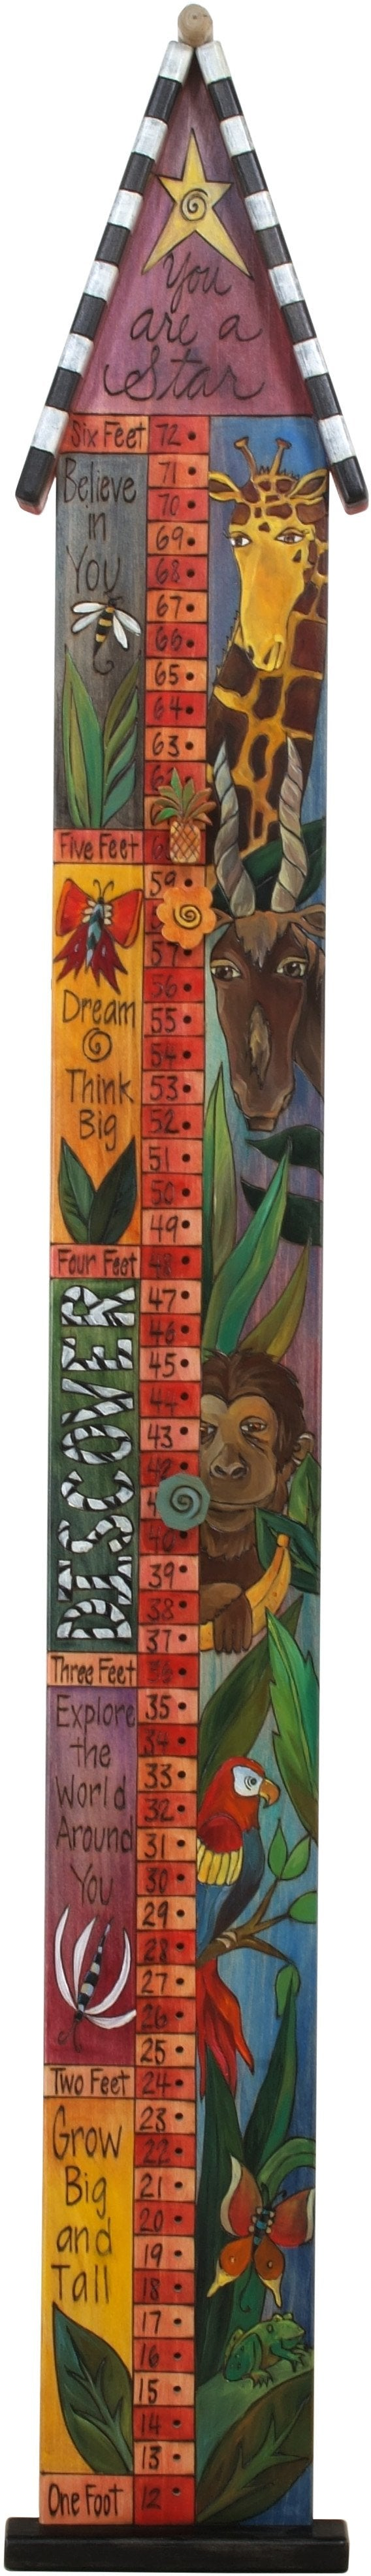 "Growth Chart with Pegs –  ""You are a Star"" growth chart with pegs with safari animal motif"